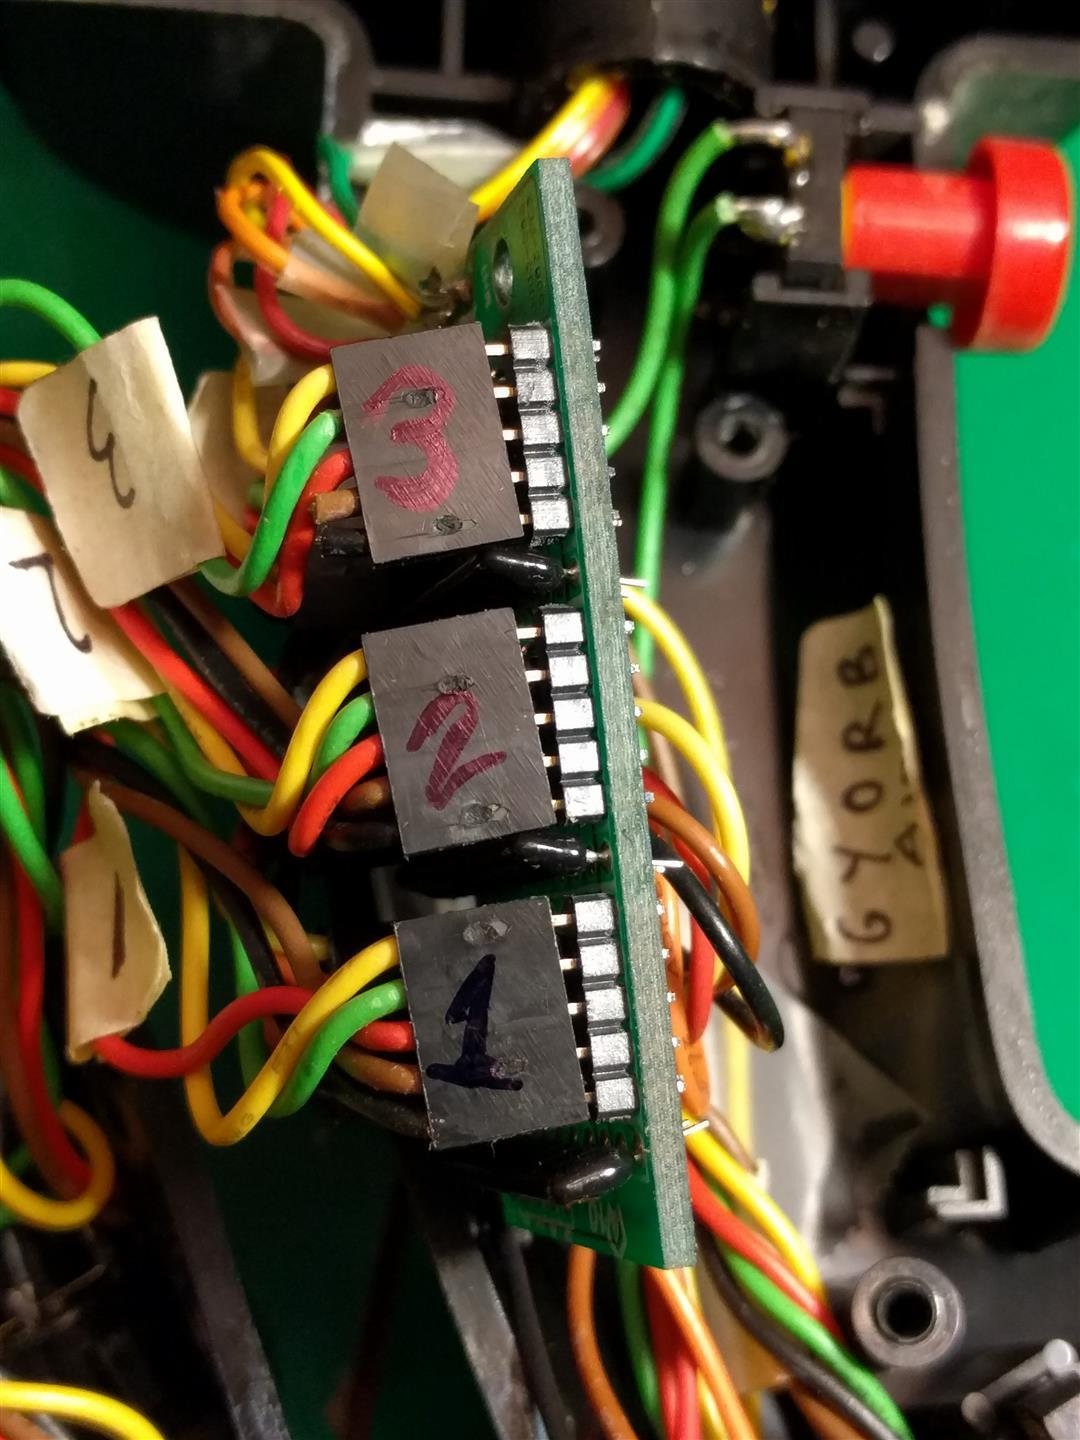 F16 Flcs Tqs Original Usb Conversion Simhq Forums Electrical Wiring Registration Board Of Wires Have Fallen Off Switches Etc While On The Bench And Having Pics Has Saved Me From To Do Alot Googling Figure Out What